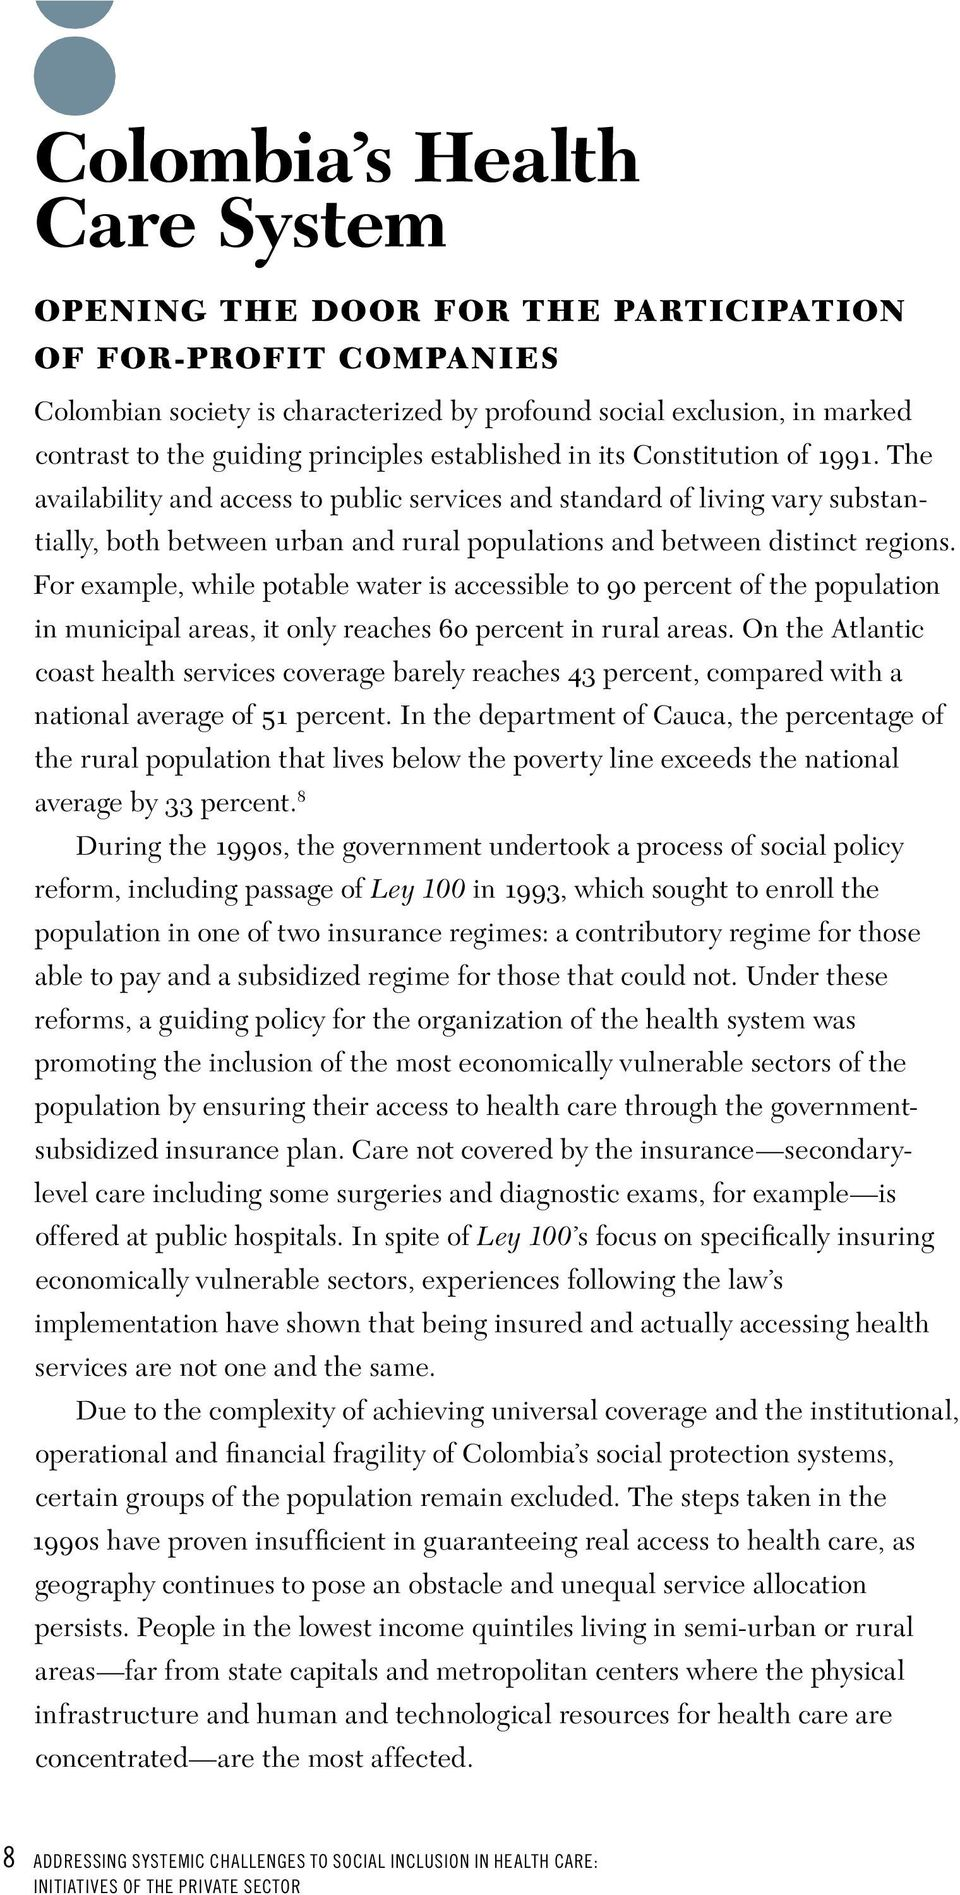 The availability and access to public services and standard of living vary substantially, both between urban and rural populations and between distinct regions.